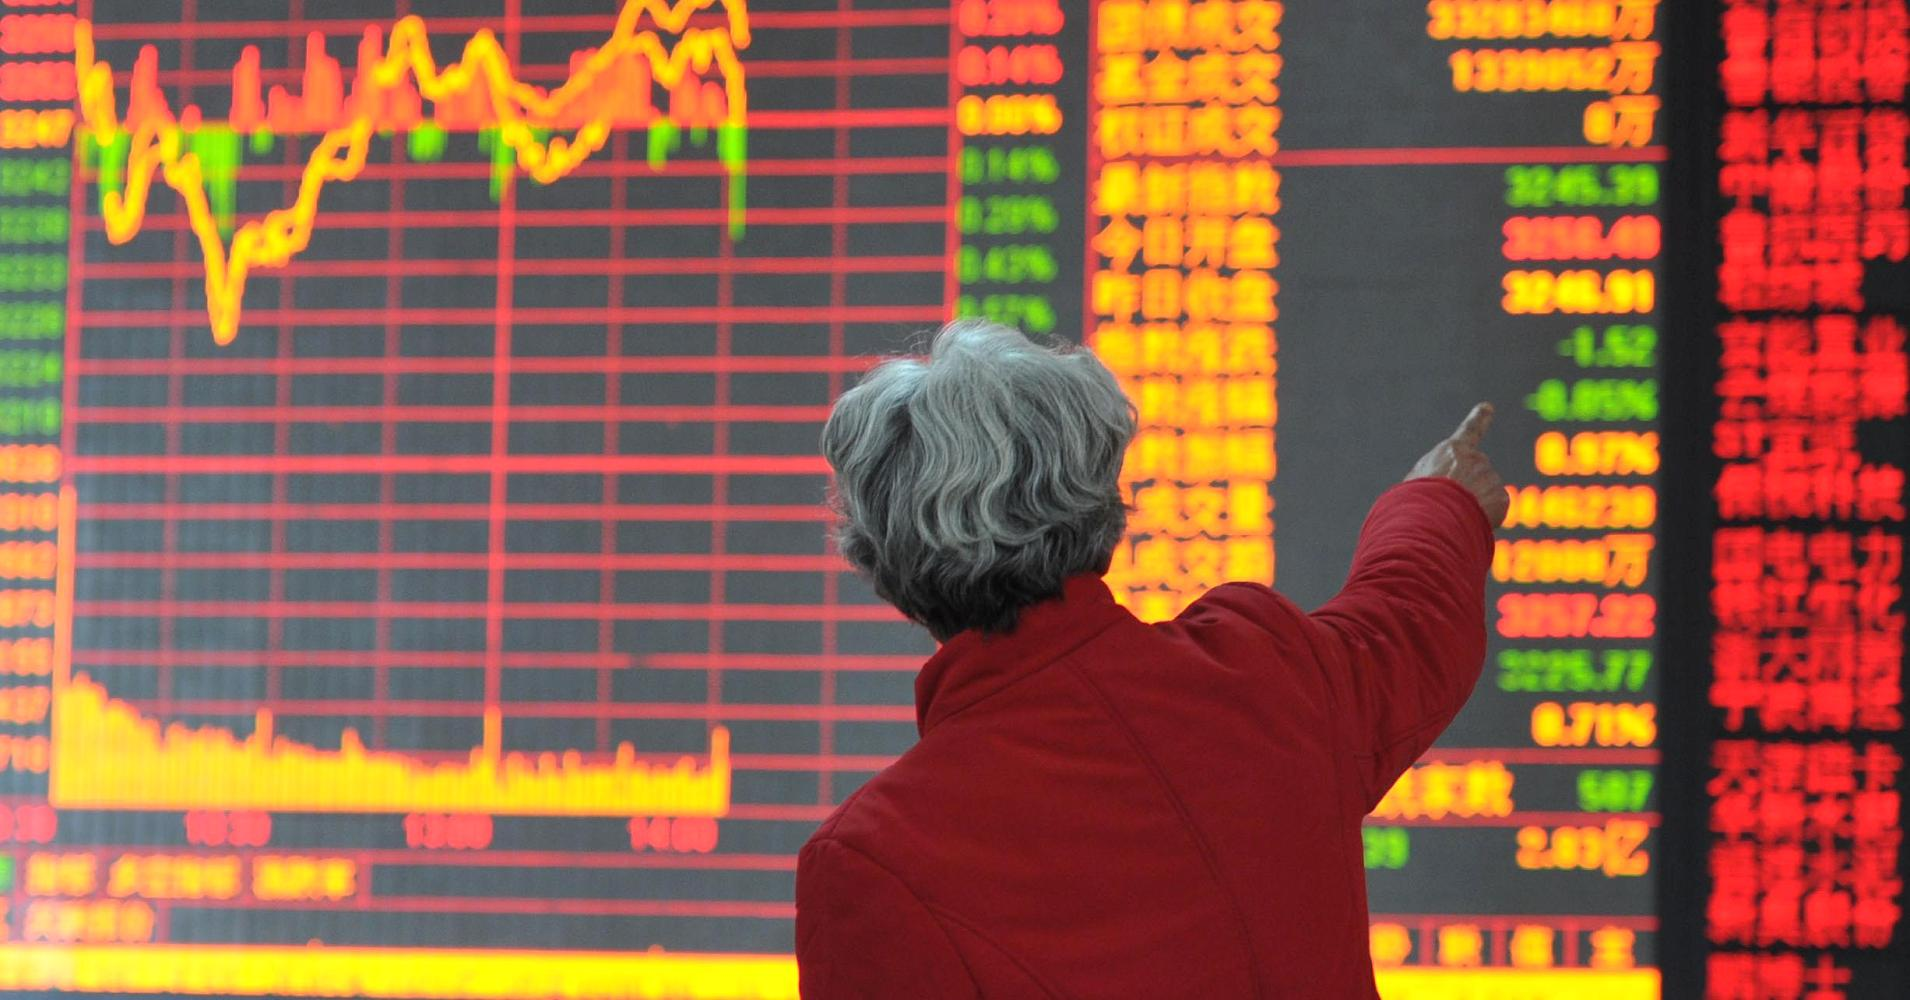 Chinas Media Projects Confidence In Face Of Stock Market Slump Tariff Threats Stocks Making Biggest Moves Premarket